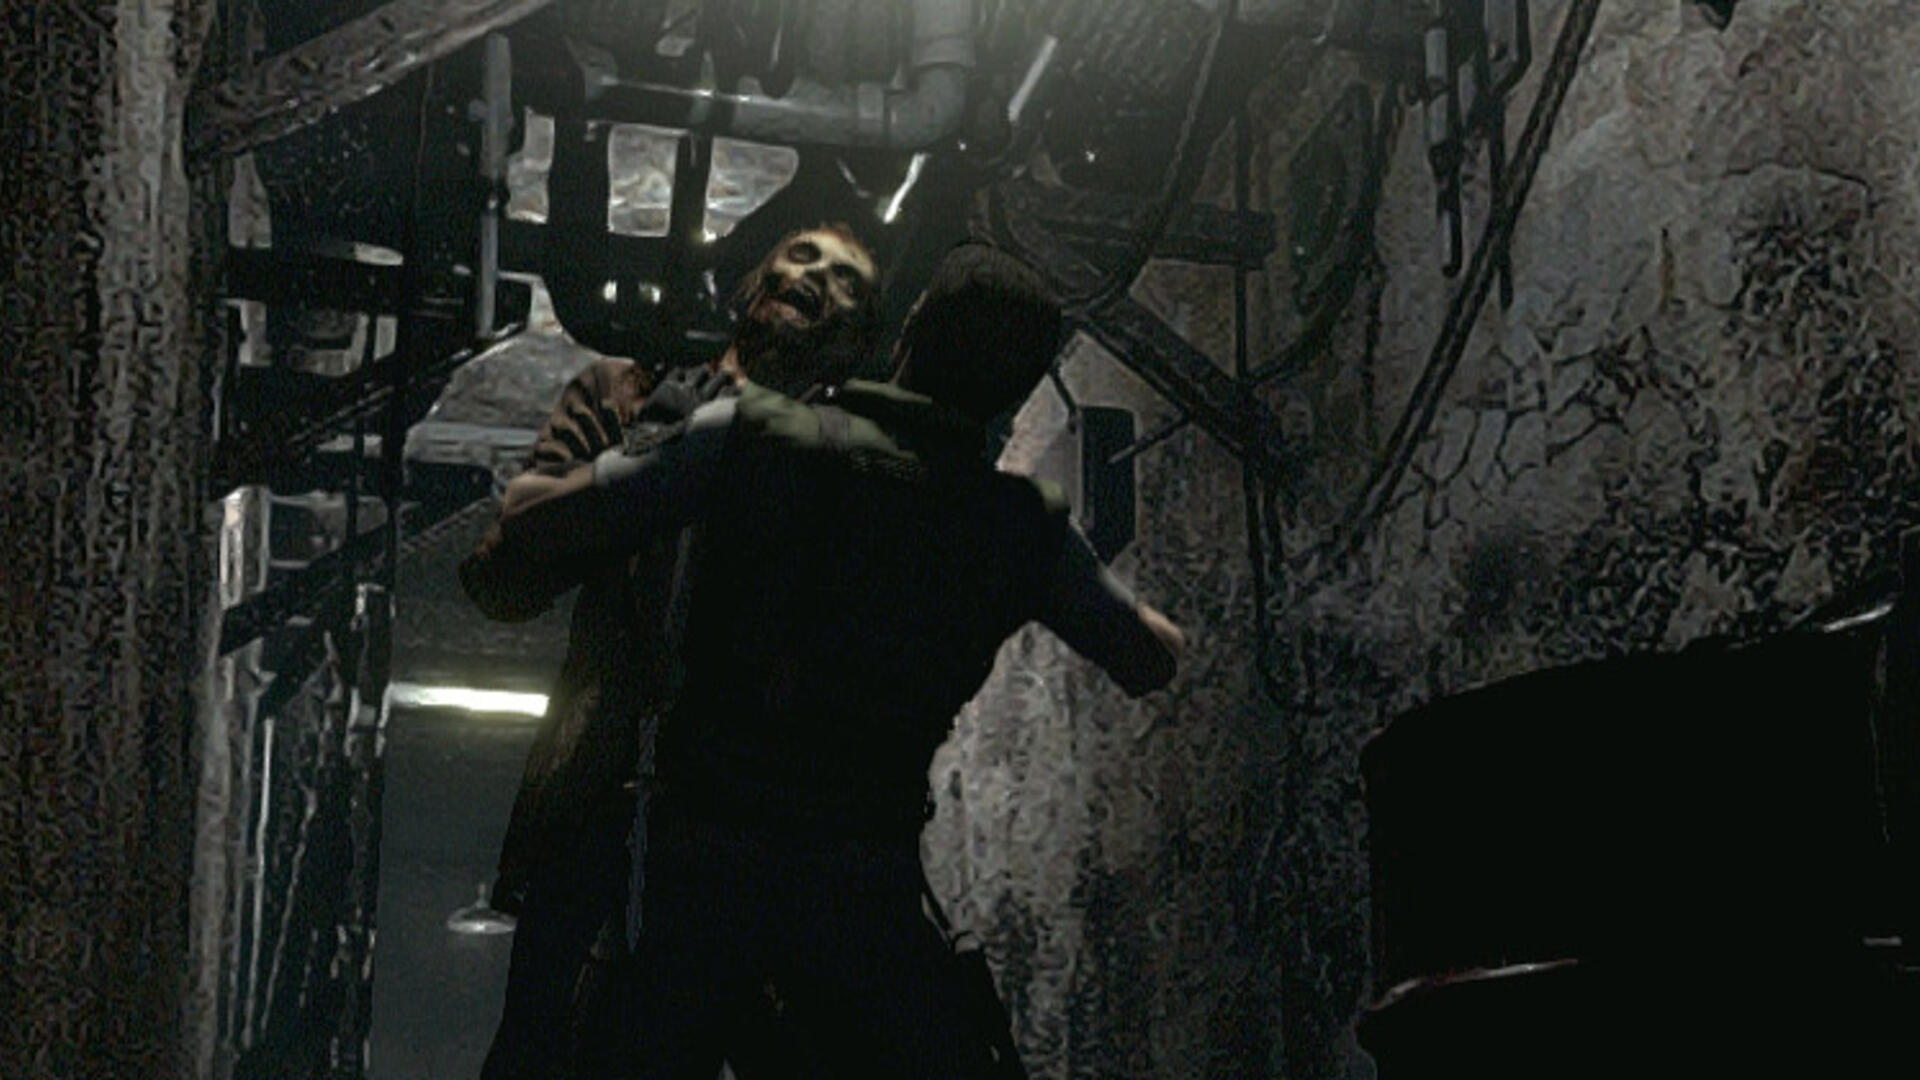 What Resident Evil Needs Now is a Visionary